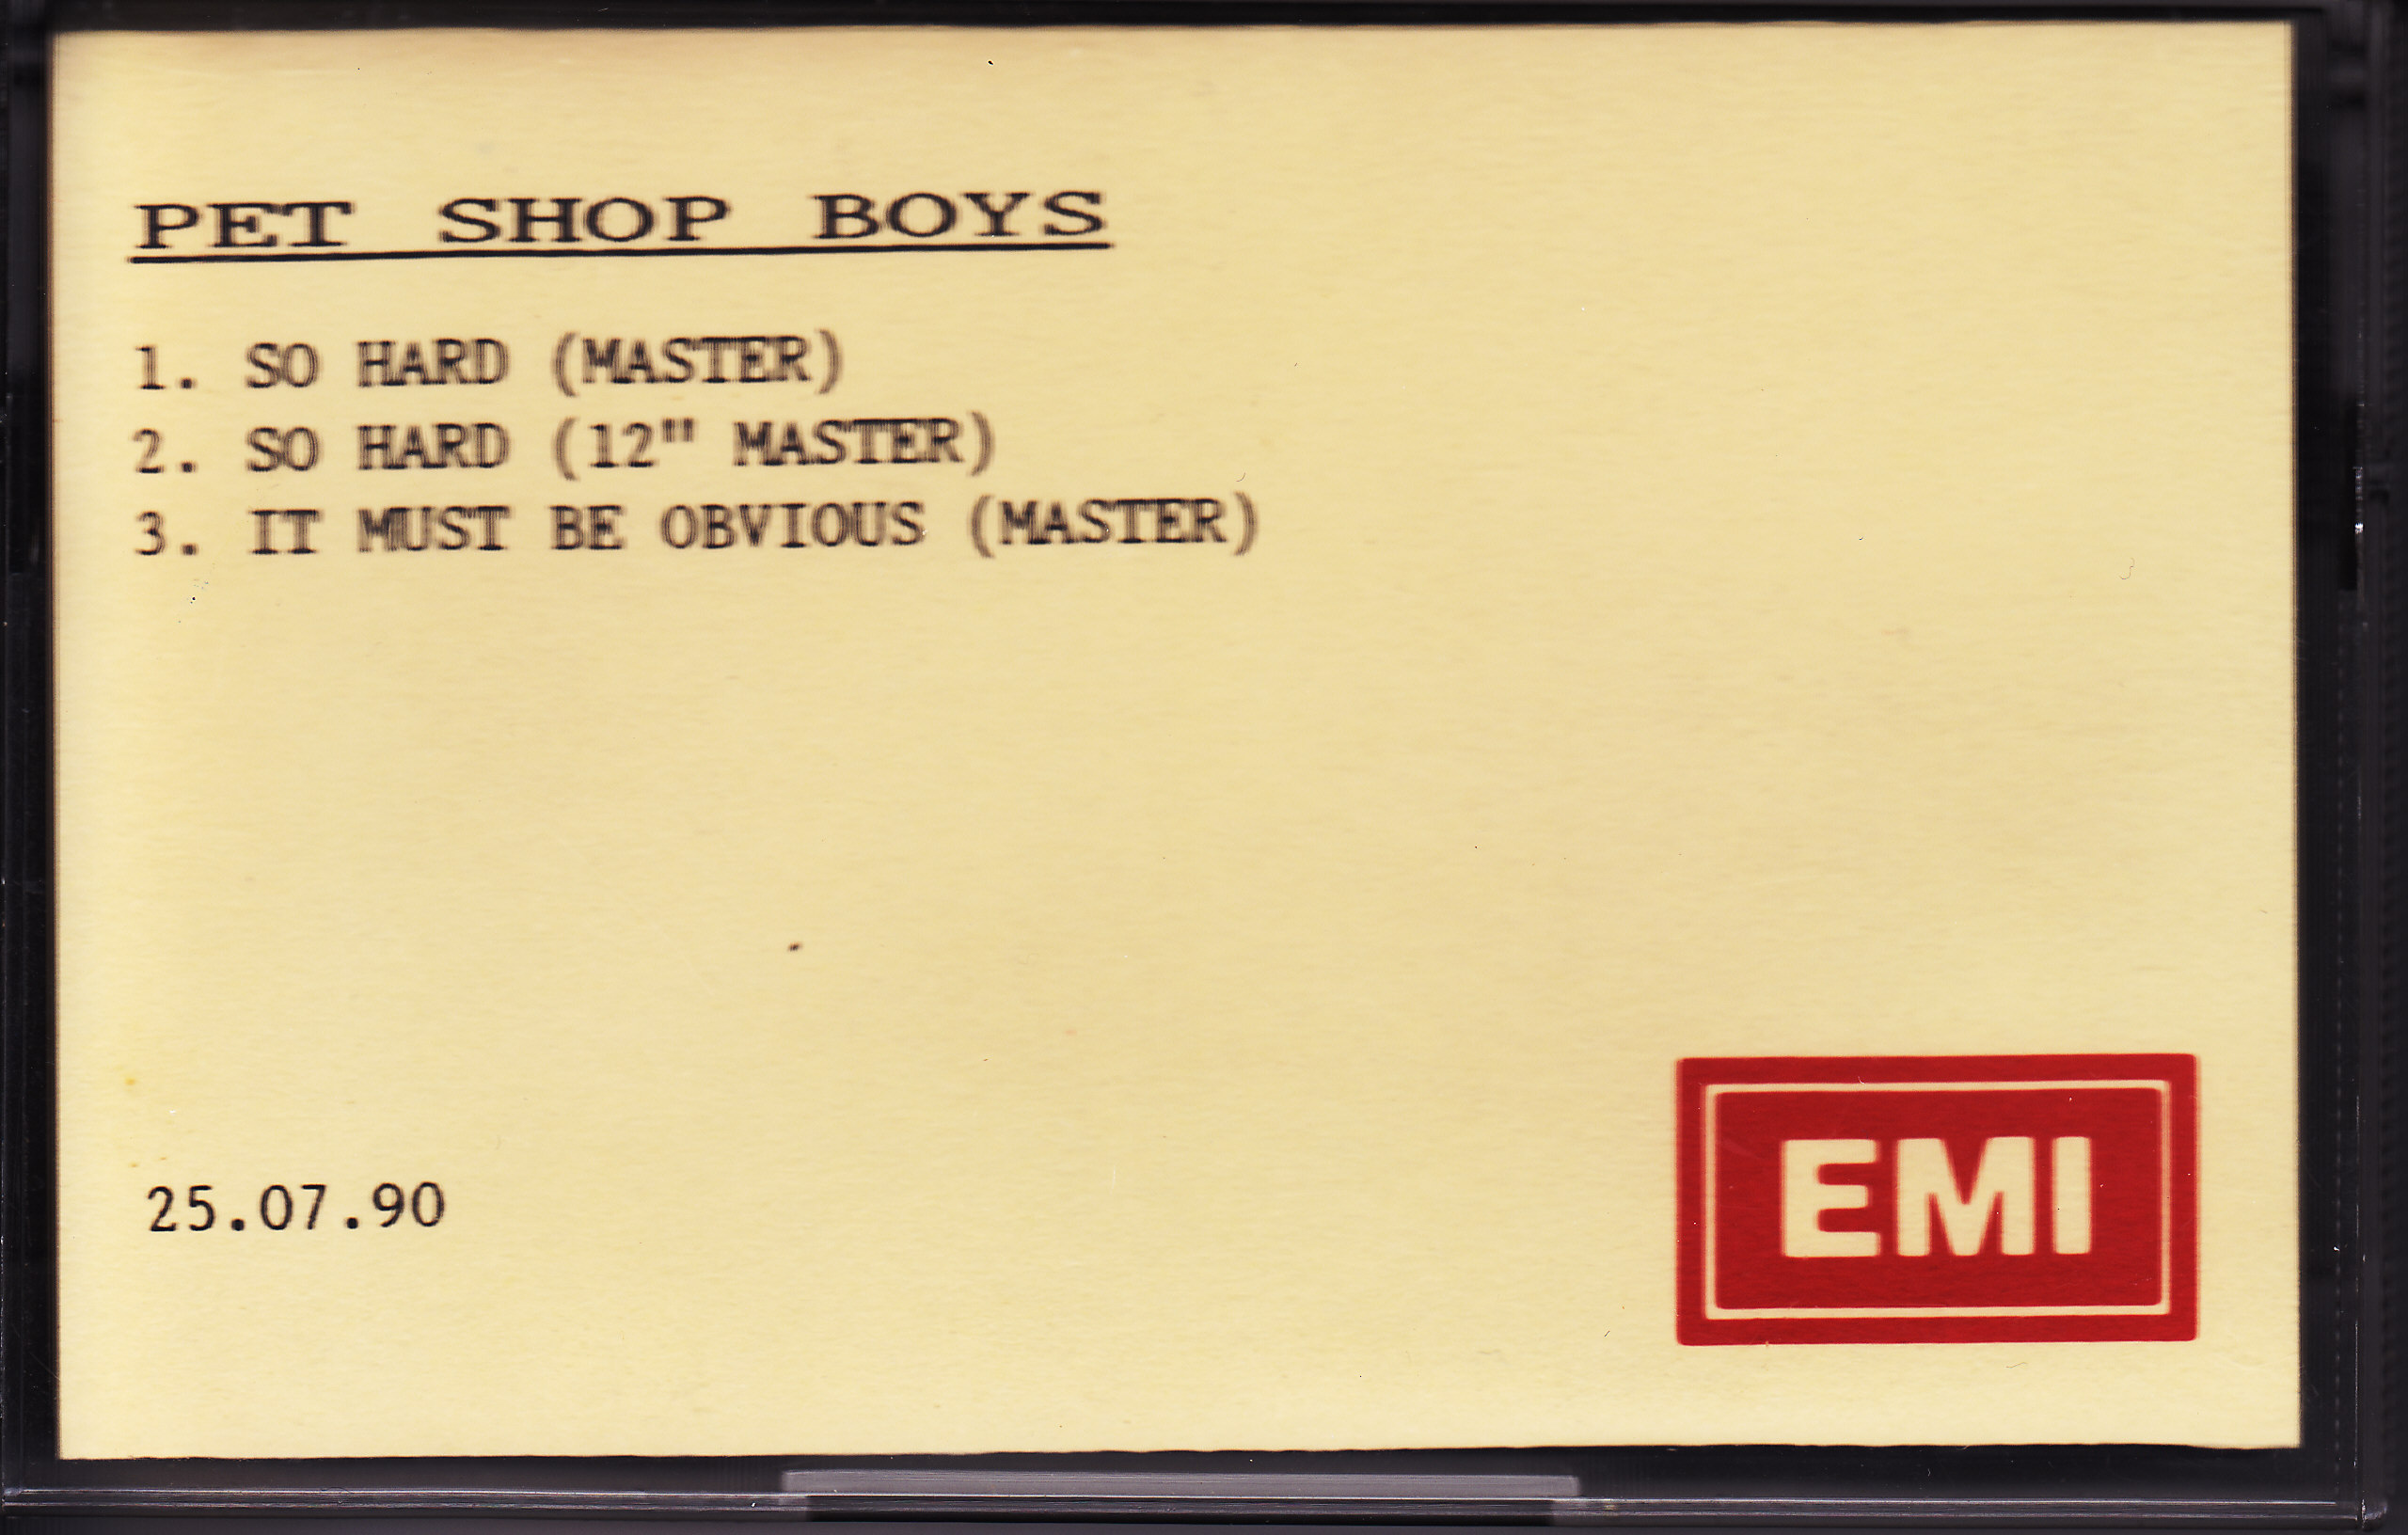 Pet Shop Boys Promo Tape_0004 (4).jpg